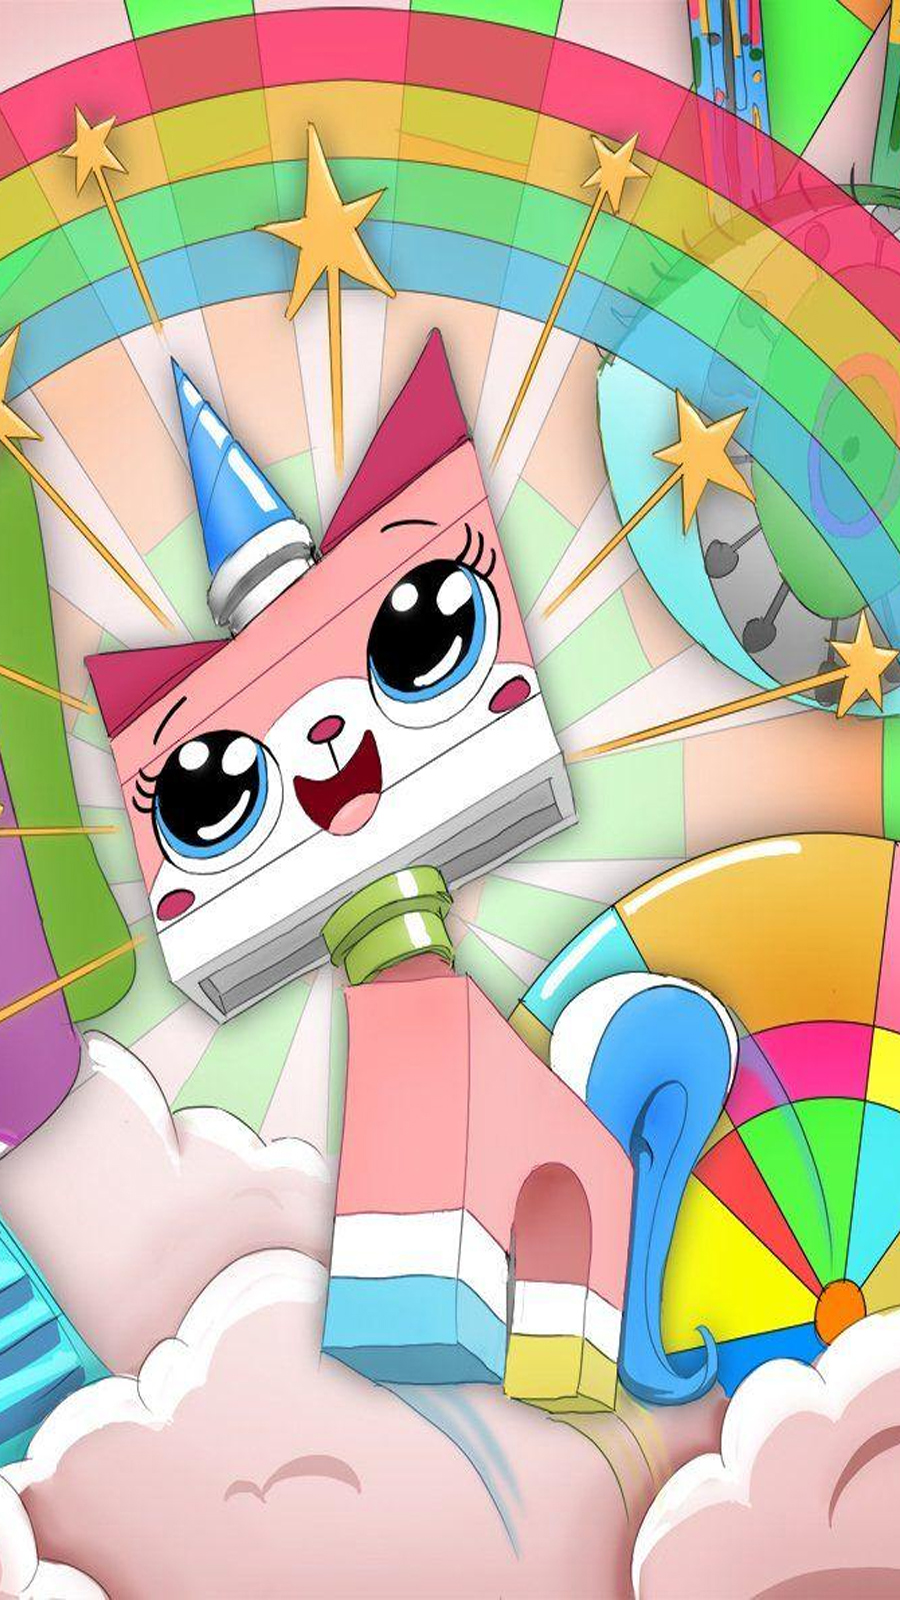 Unikitty Wallpapers Free Download For Mobile and Desktop